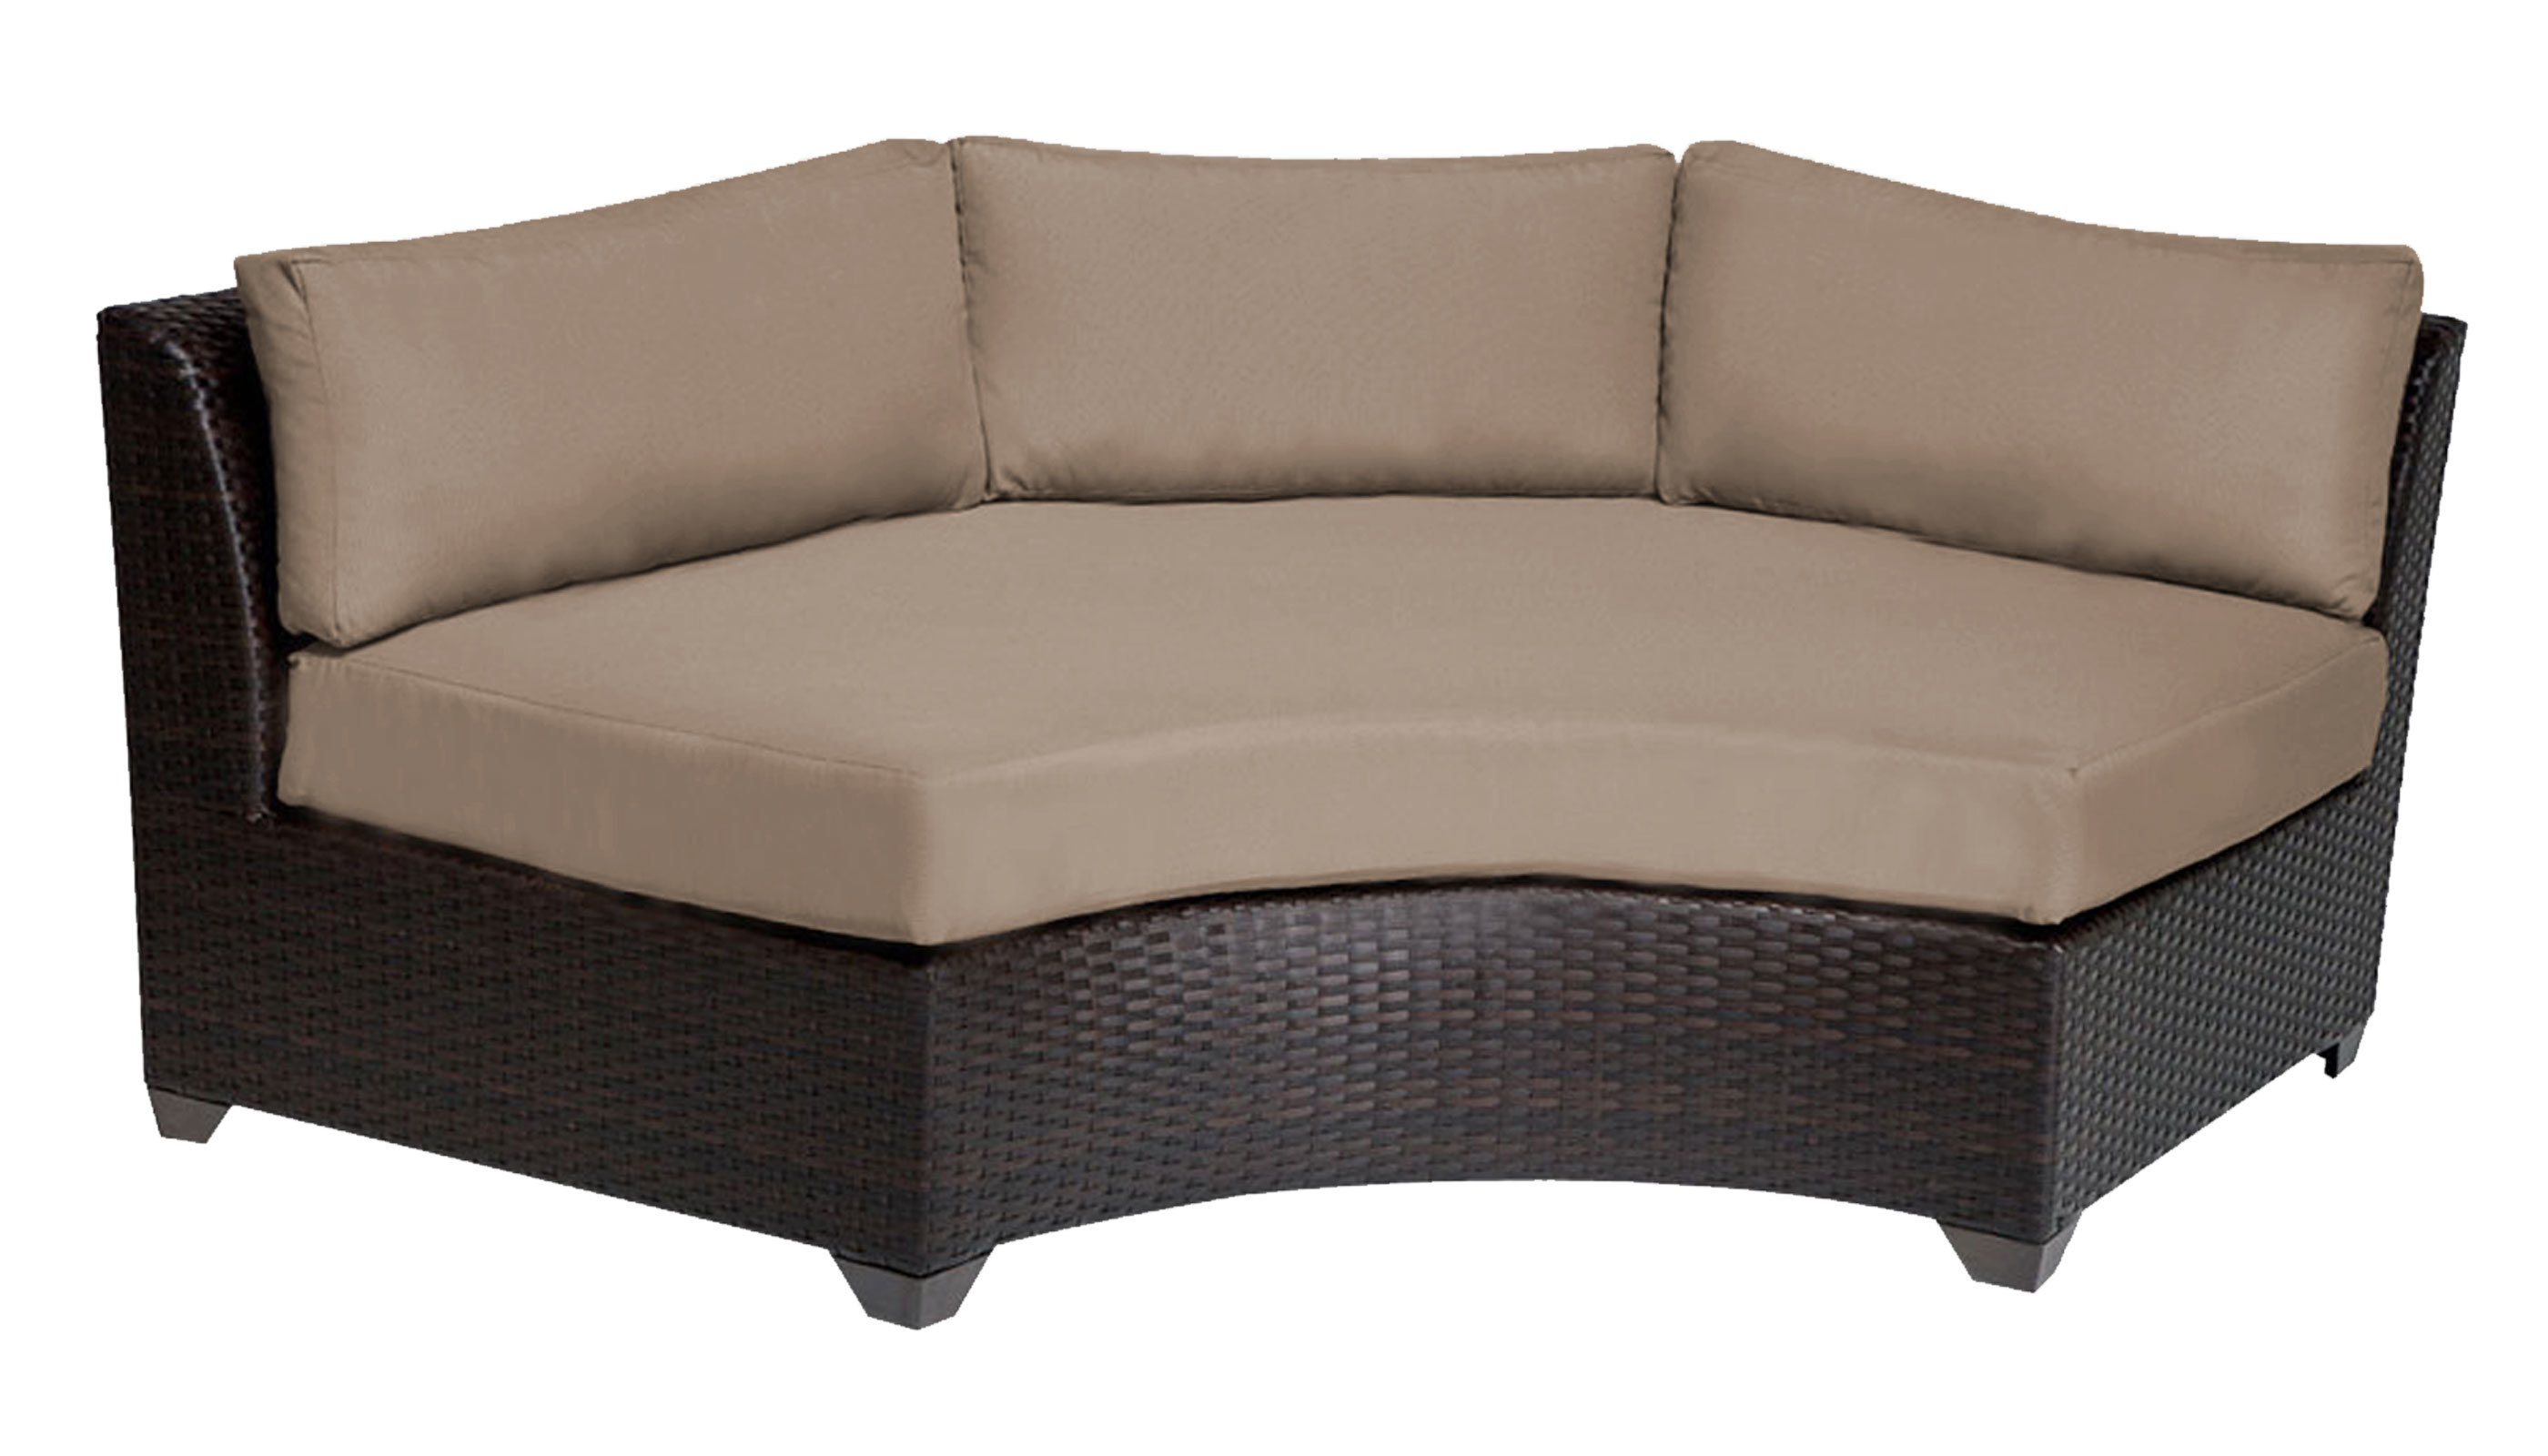 Camak Patio Sofa With Cushions Throughout Widely Used Belton Patio Sofas With Cushions (View 7 of 25)